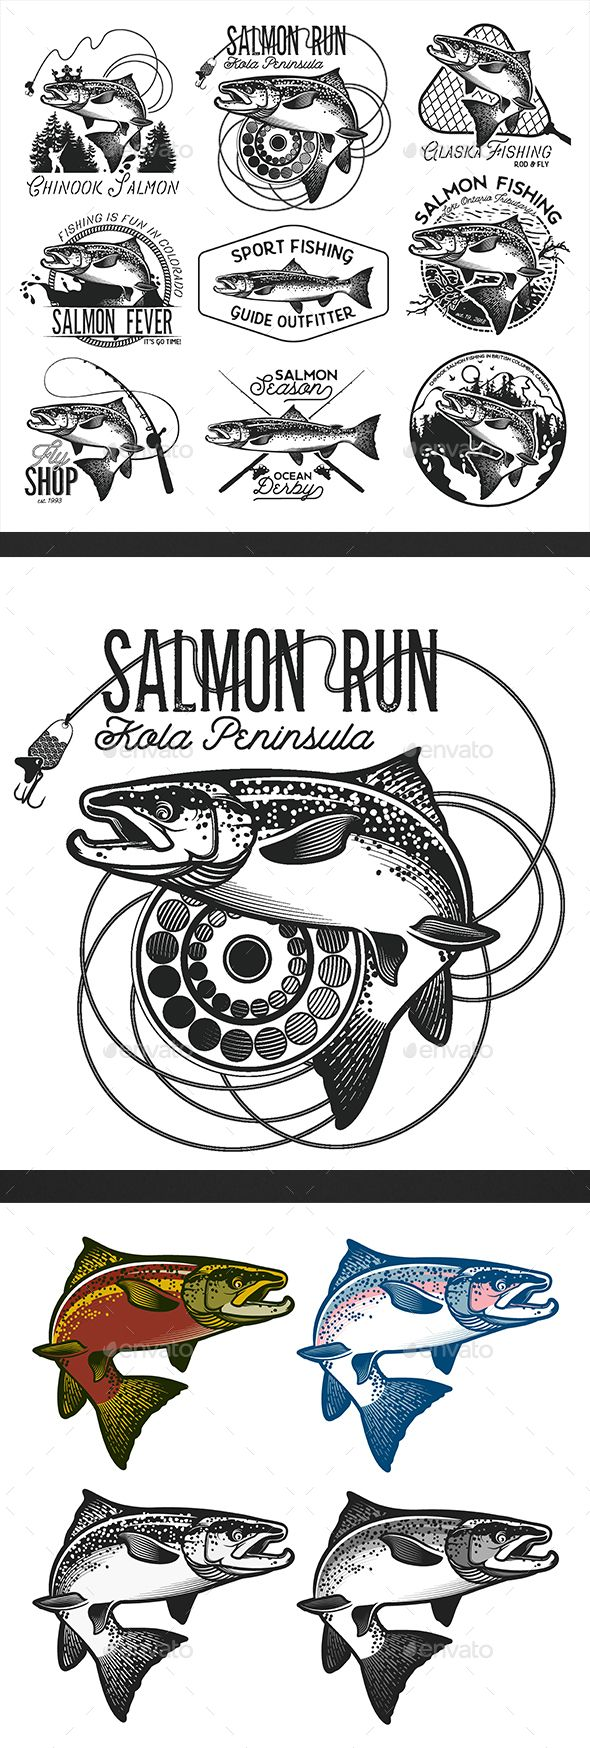 Vintage Salmon Fishing Emblems, labels and design elements. Comes as grouped eps. 10 file editable Jpg. Please note: fonts are not